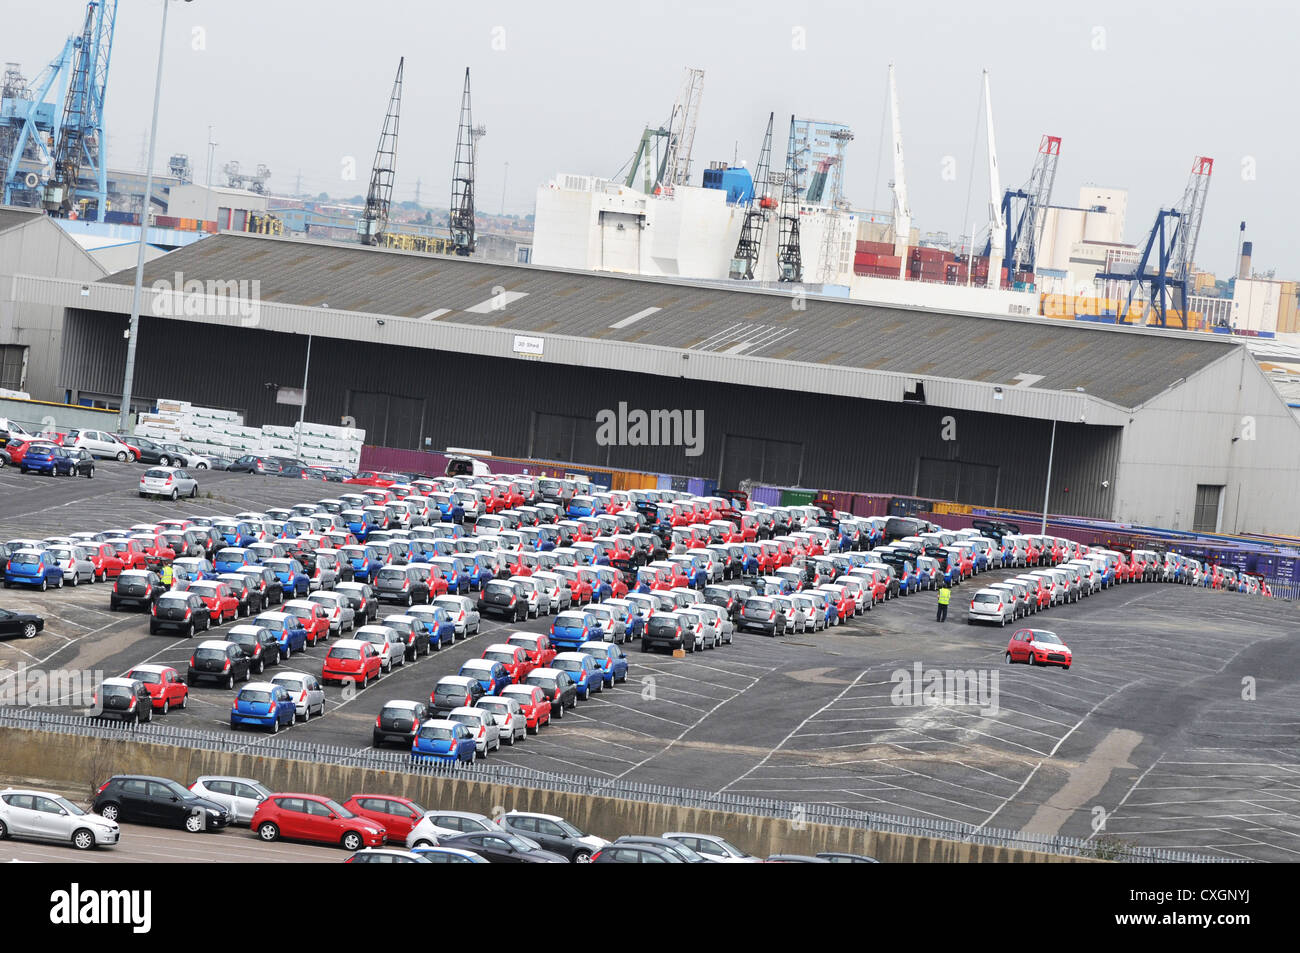 Newly imported multicoloured cars in car park at dock with cranes, warehouses and ship beyond - Stock Image